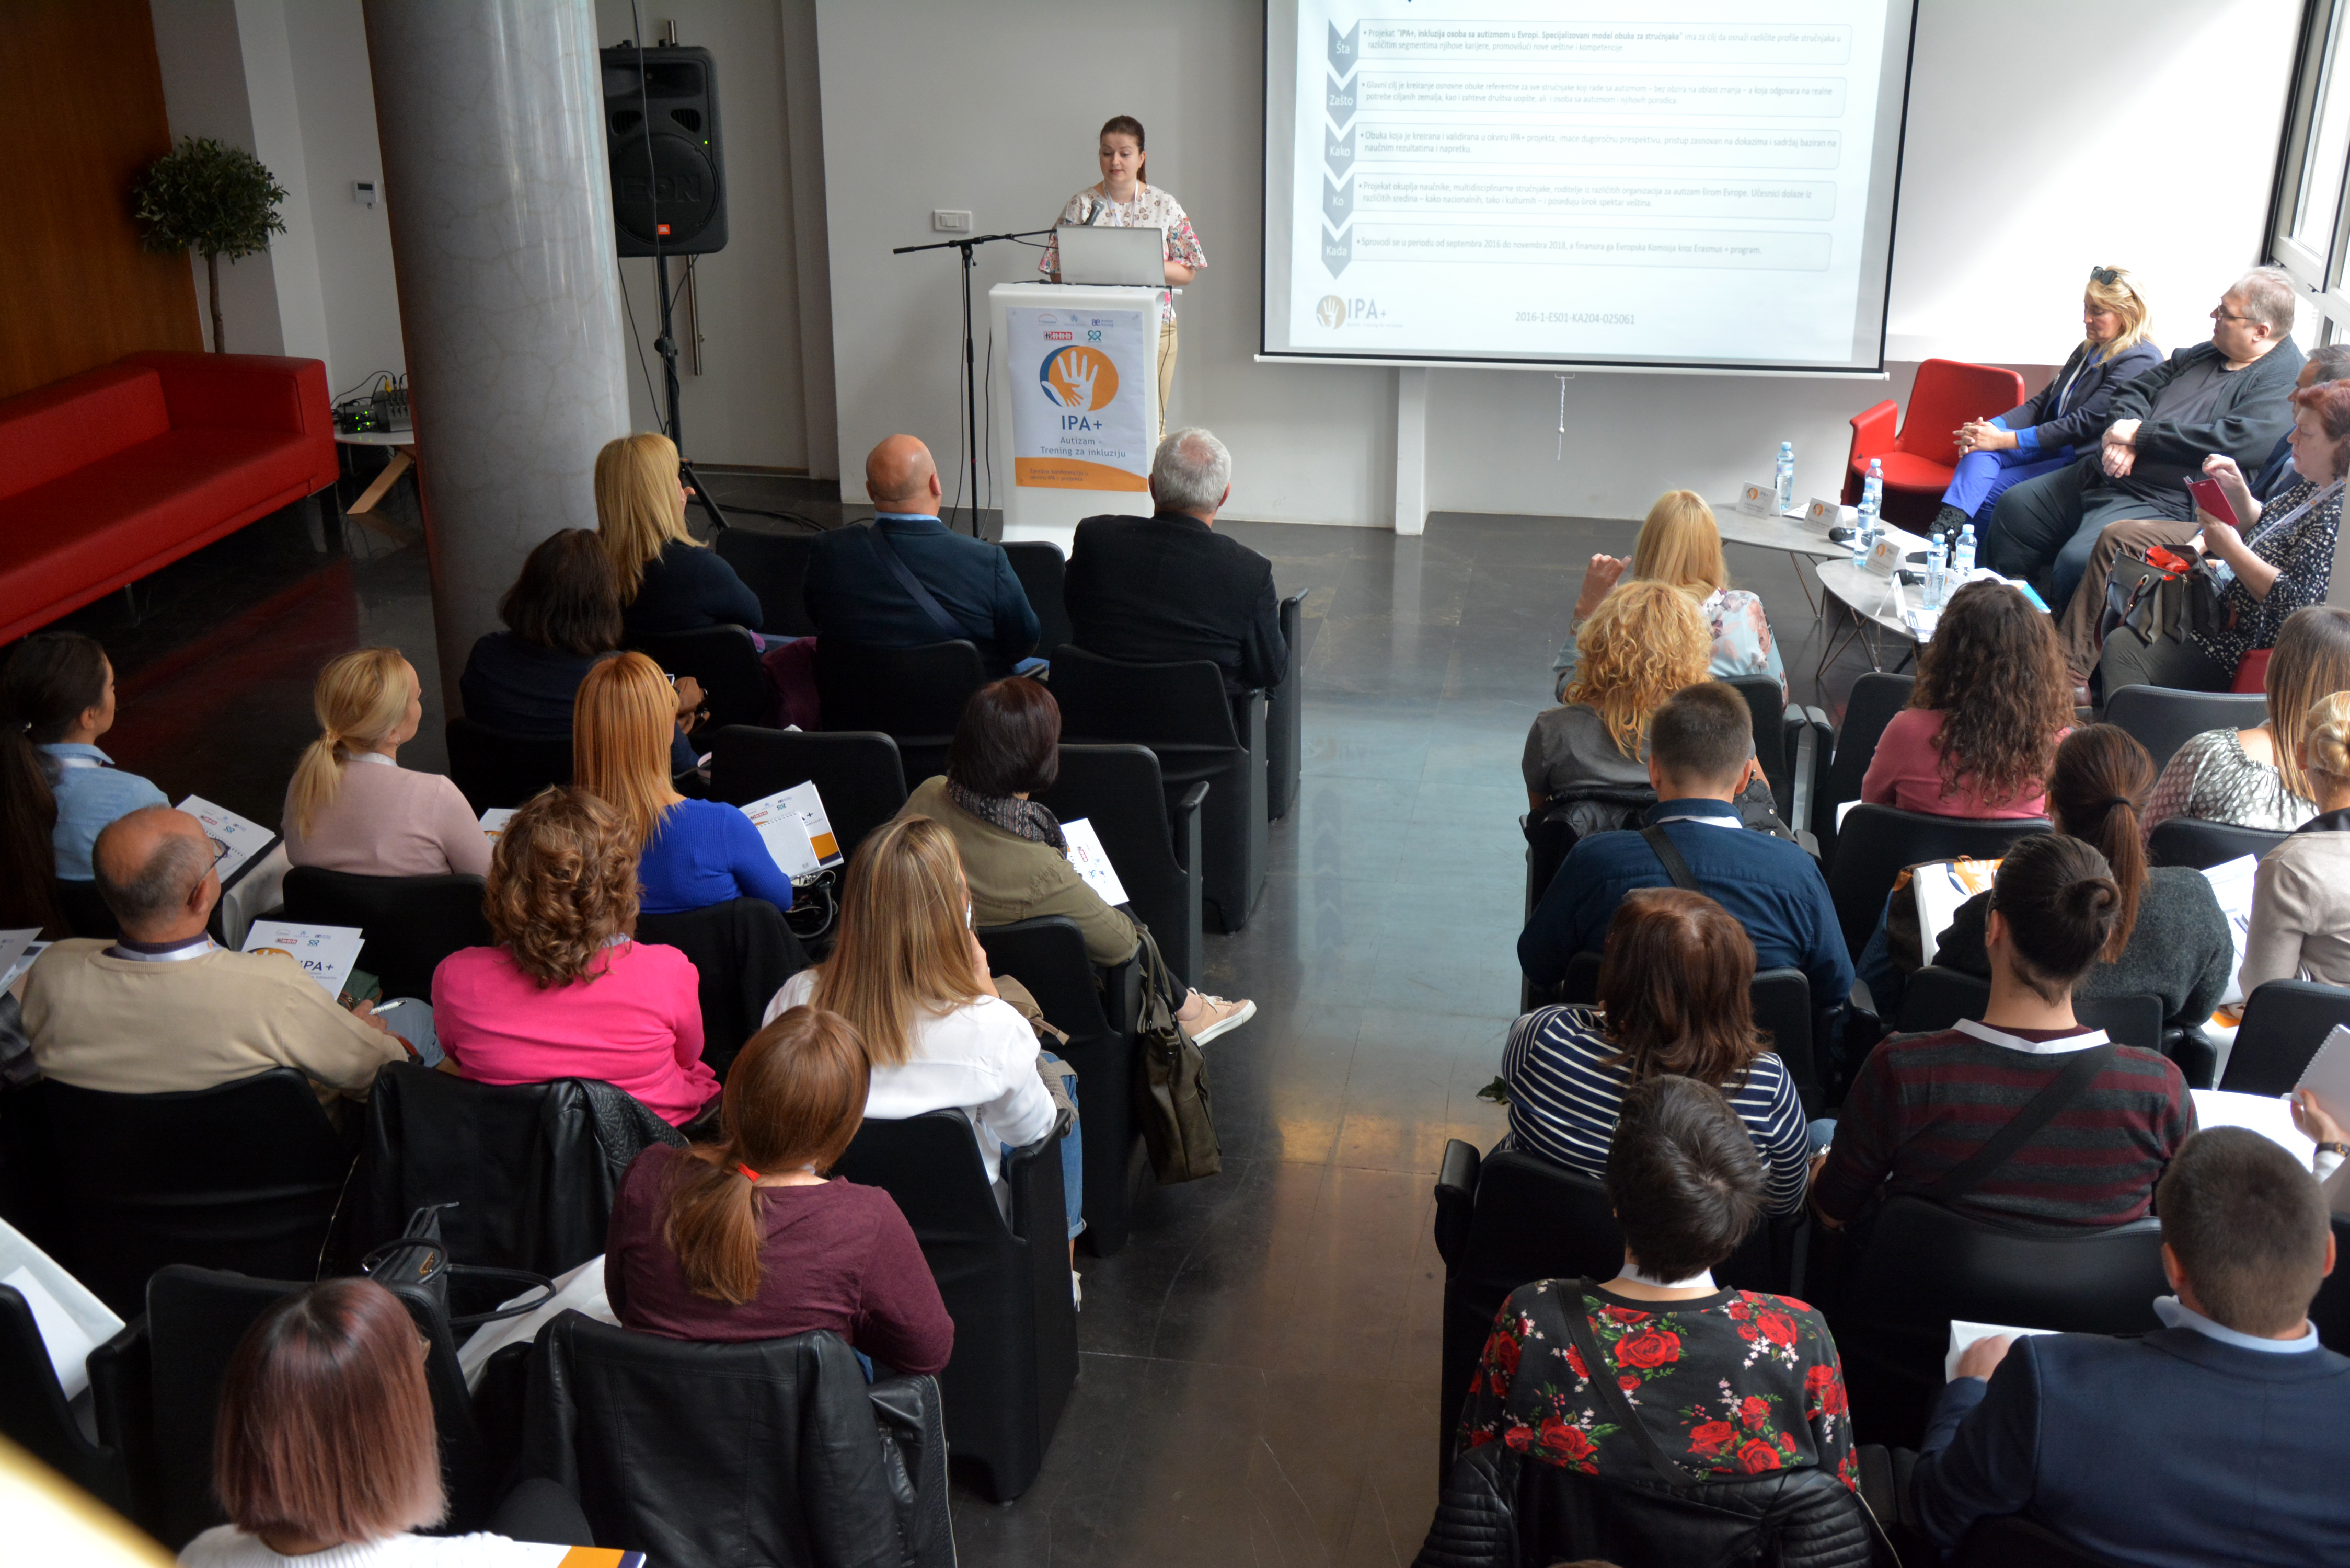 The Serbian Society of Autism hosts the IPA+ national event in Belgrade